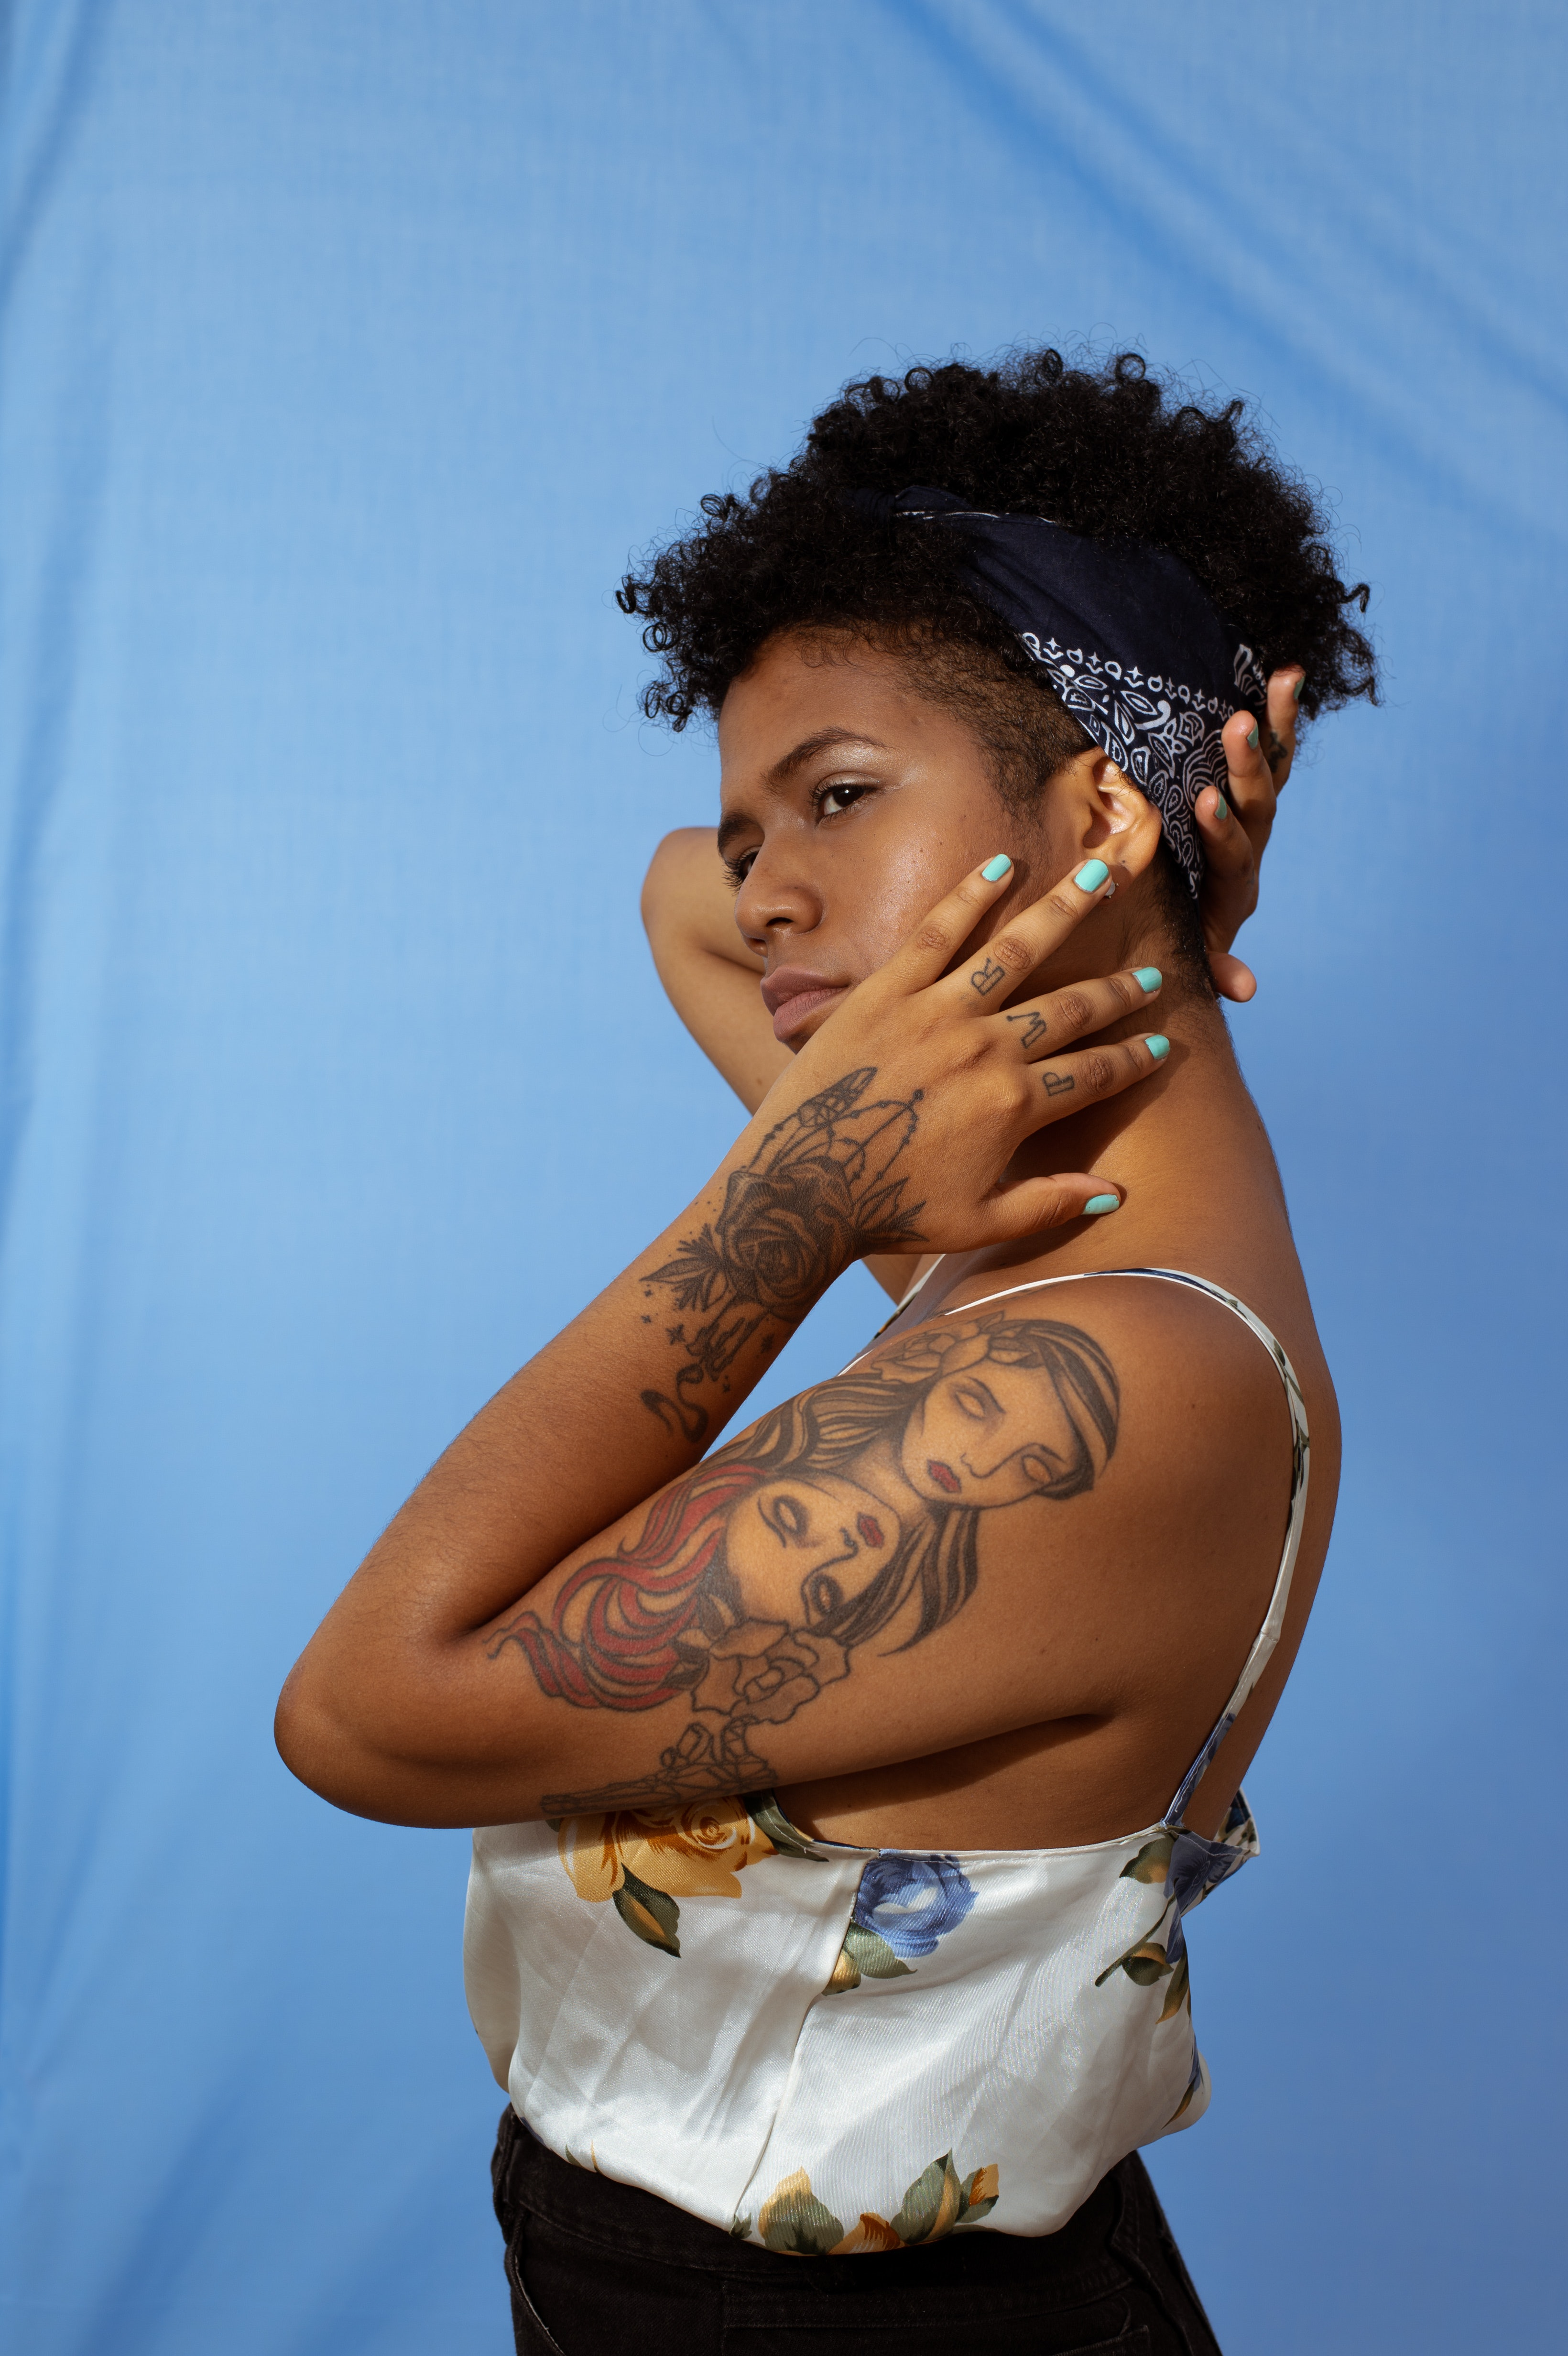 4 Myths About Tattooing On Dark Skin That Are Completely Untrue